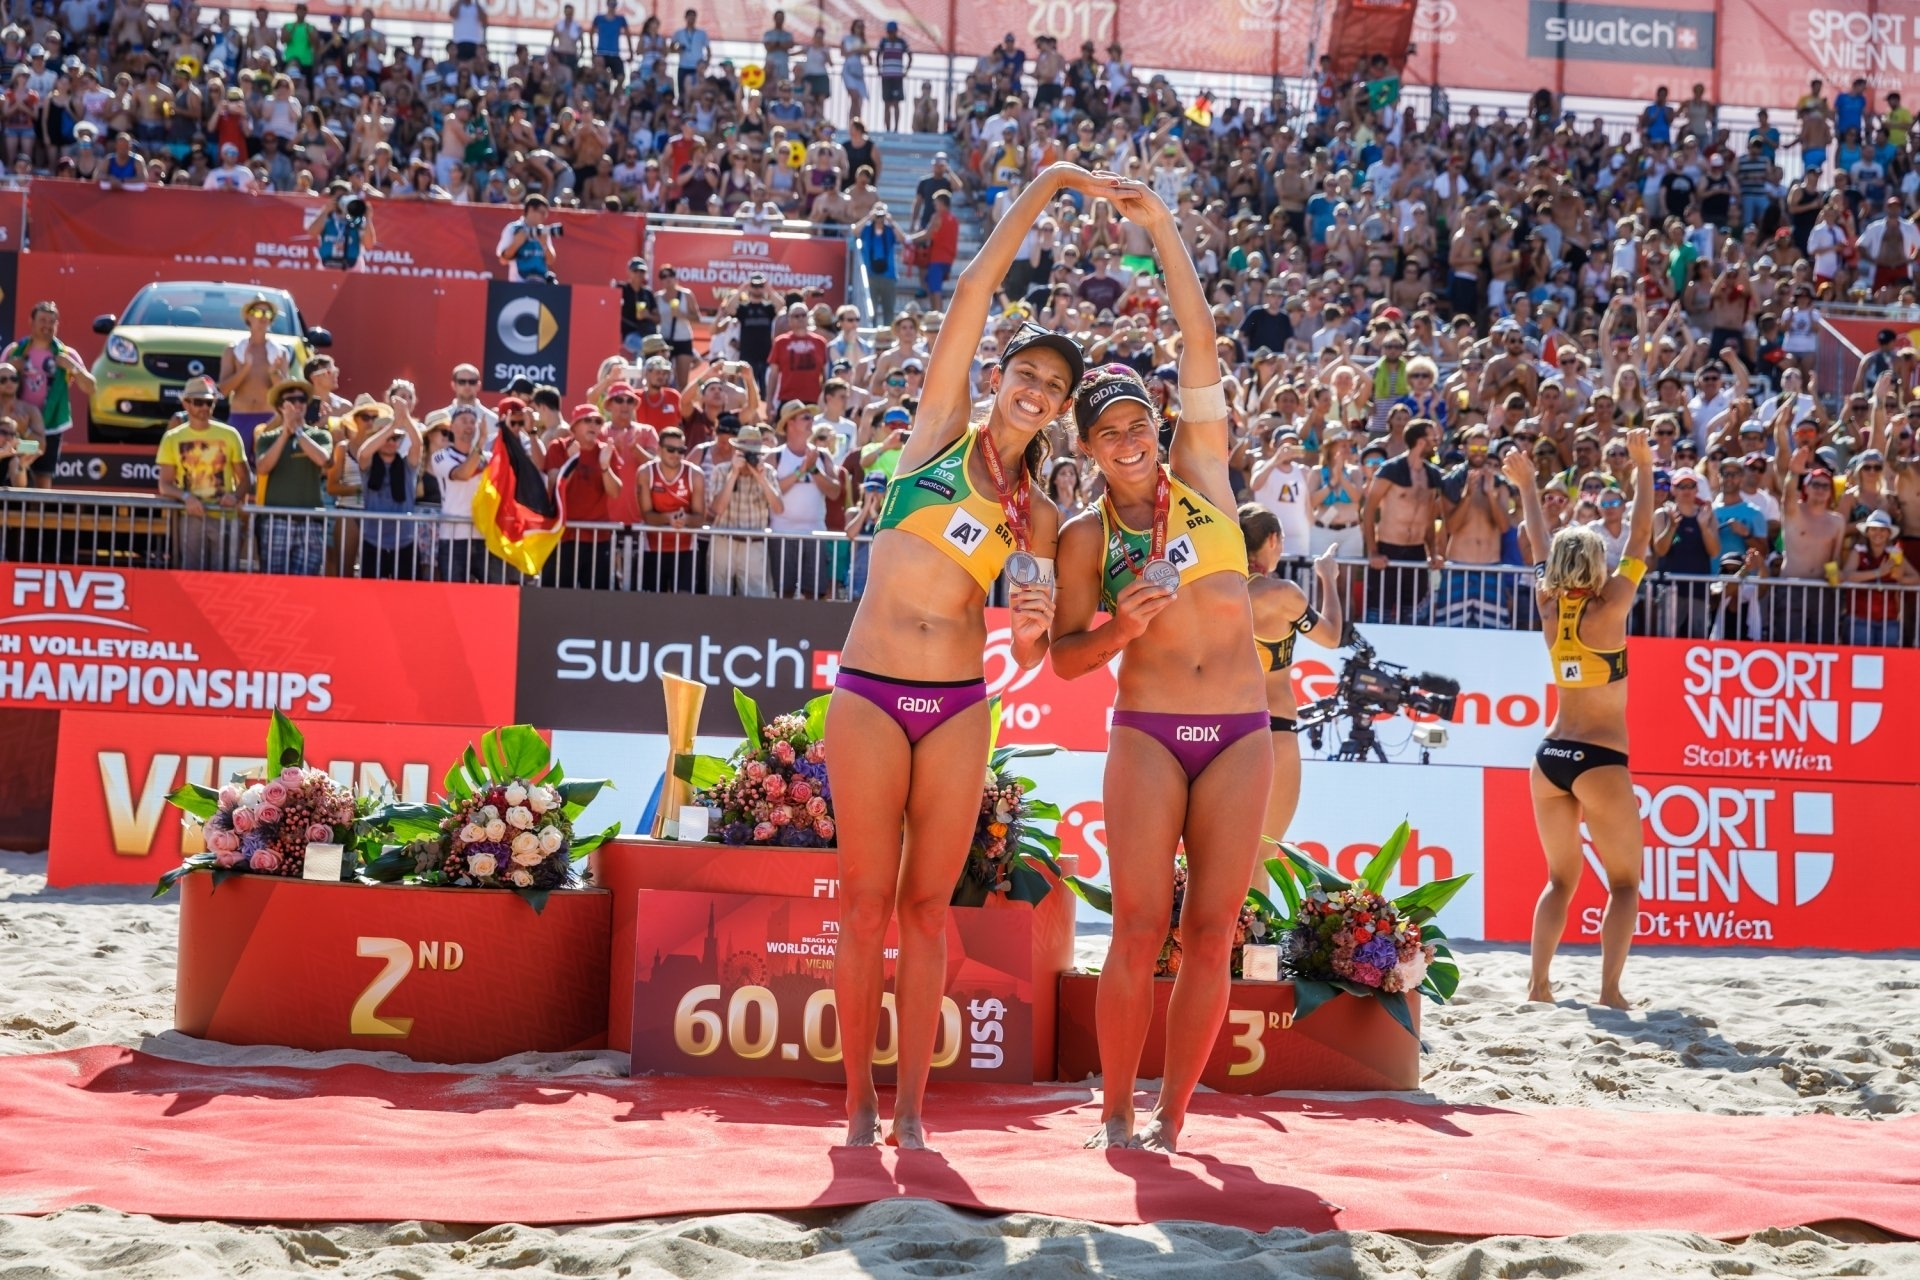 Larissa and Talita celebrate their bronze medal at the World Championships in Vienna.